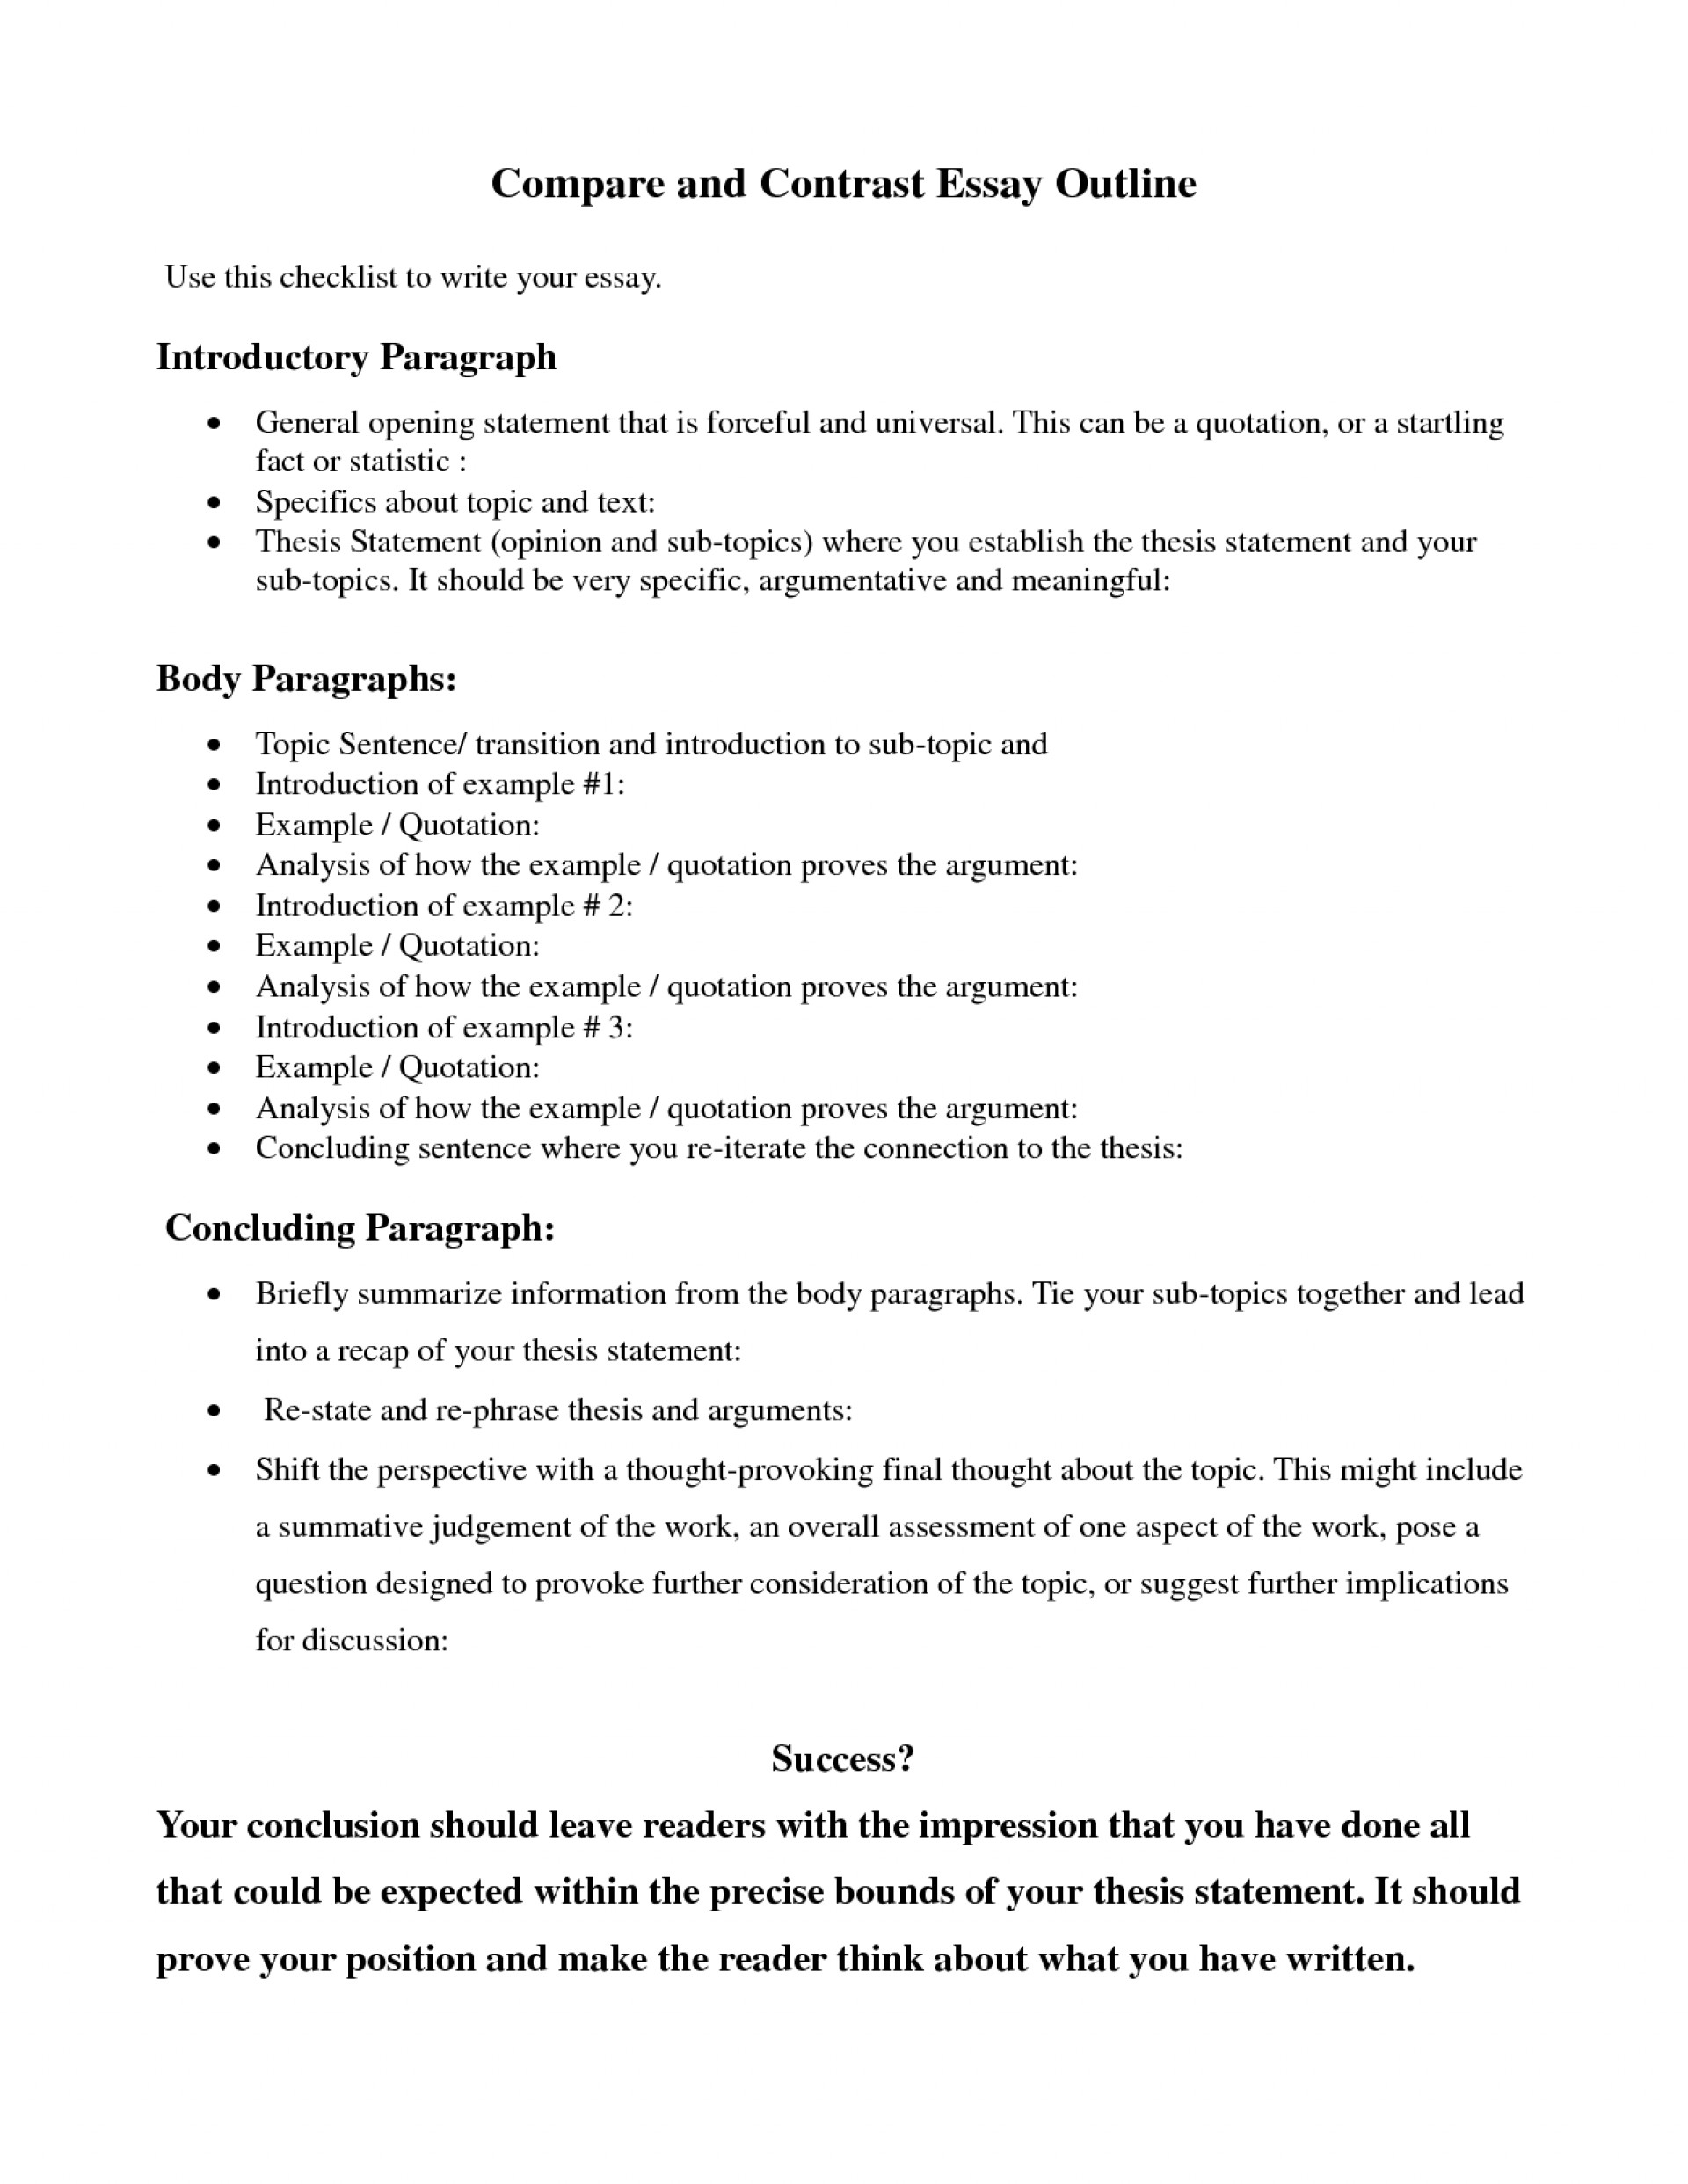 005 How To Make An Essay Outline Example Best And Use Css 1920